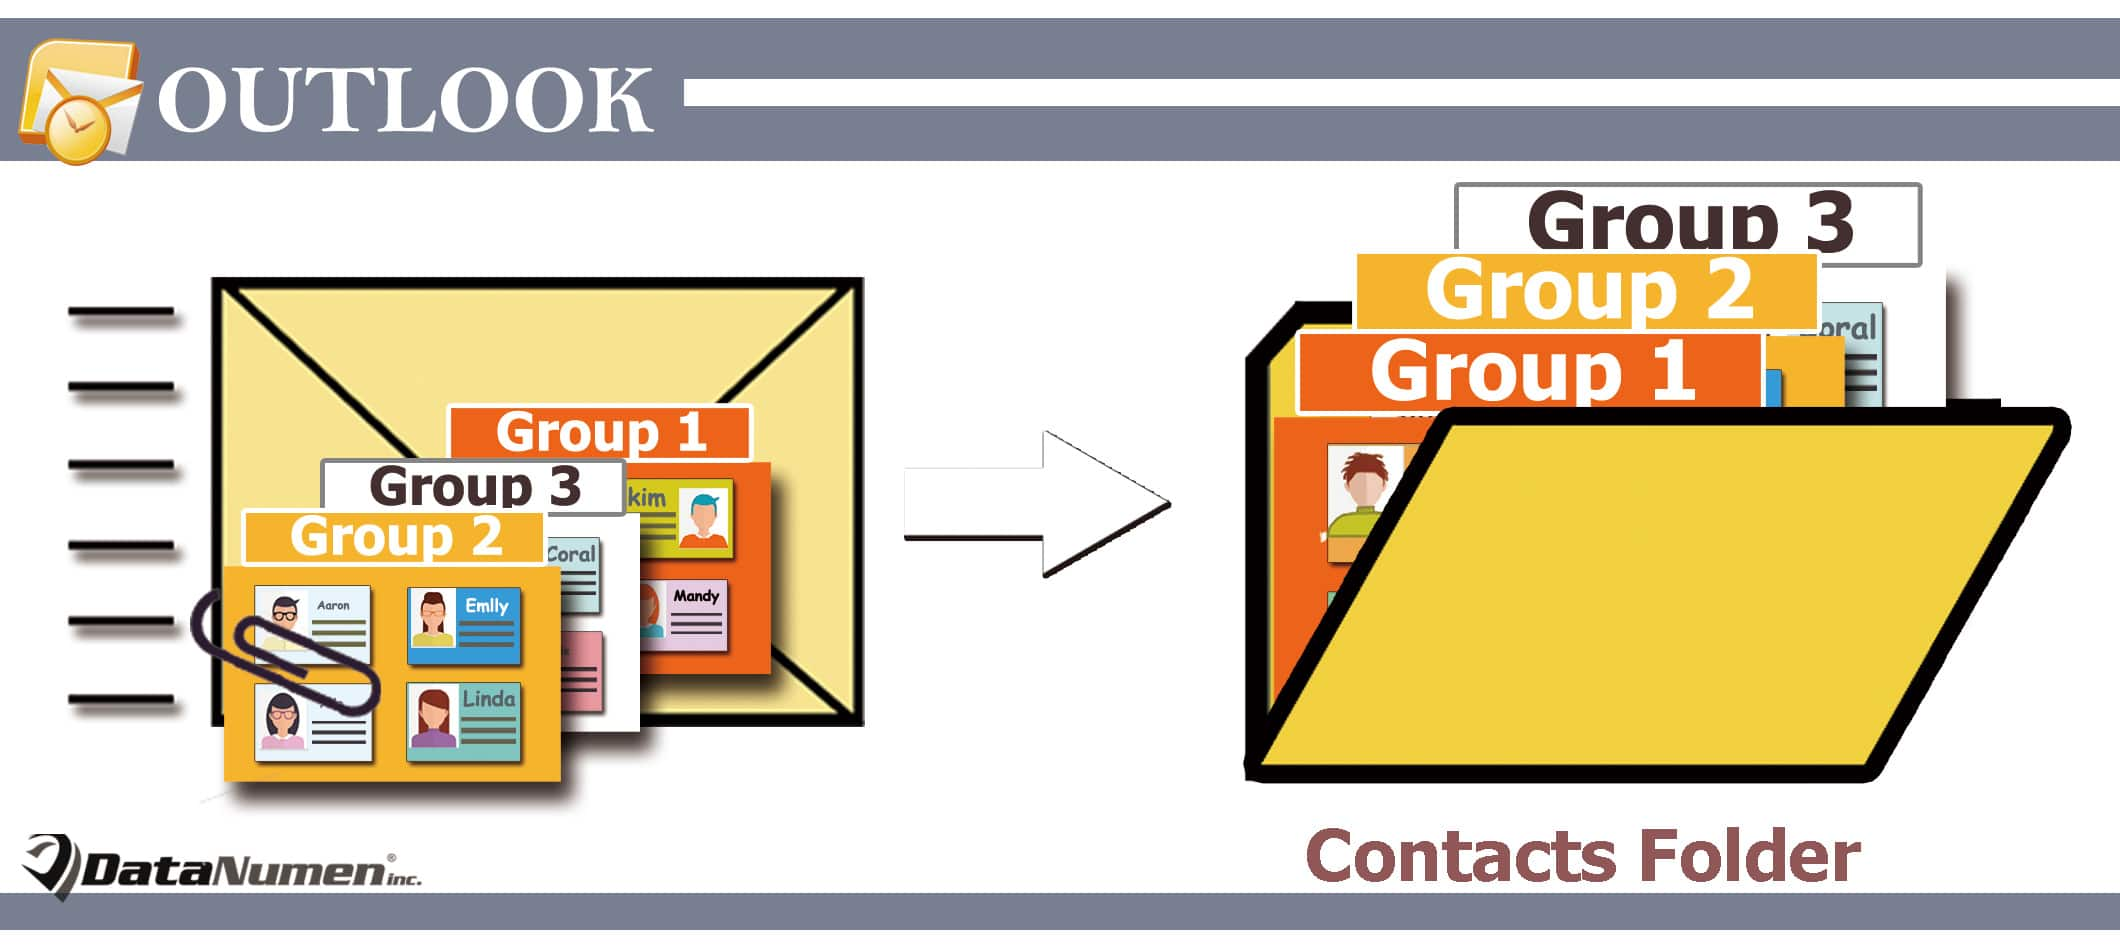 Add the Contact Groups Attached in an Email to Your Outlook Contacts Folder